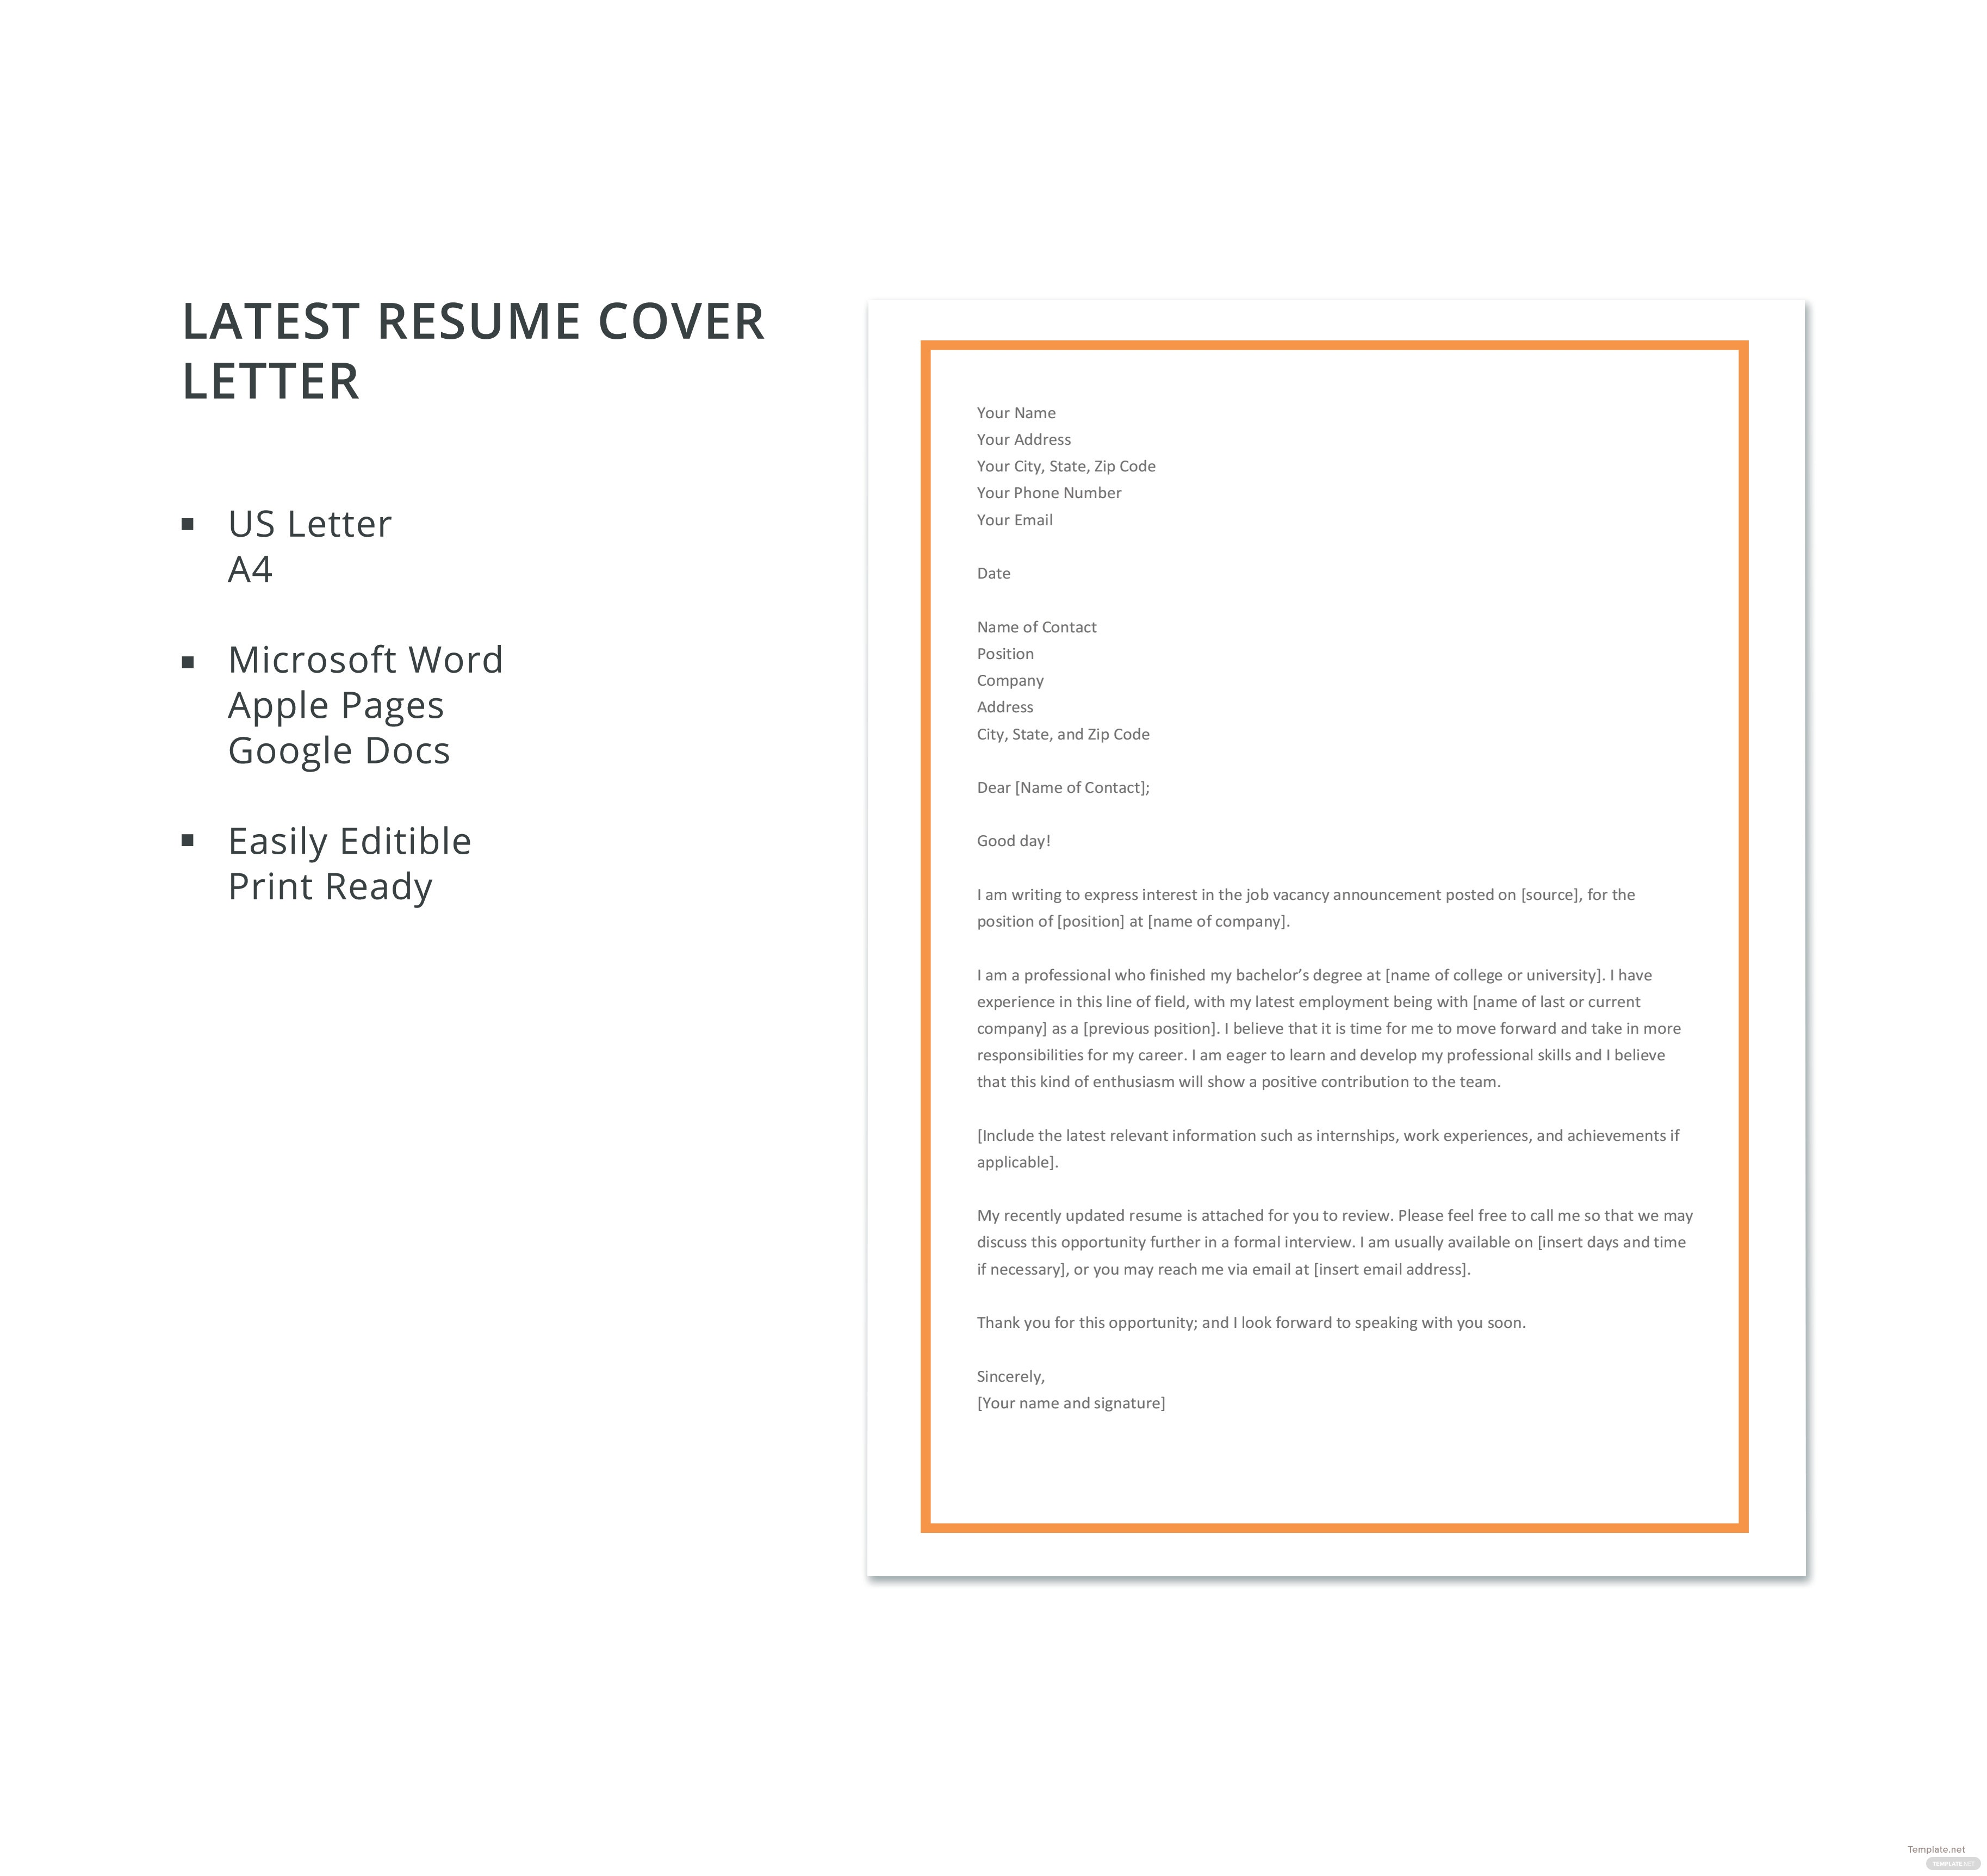 latest resume cover letter template - Good Cover Letter Template